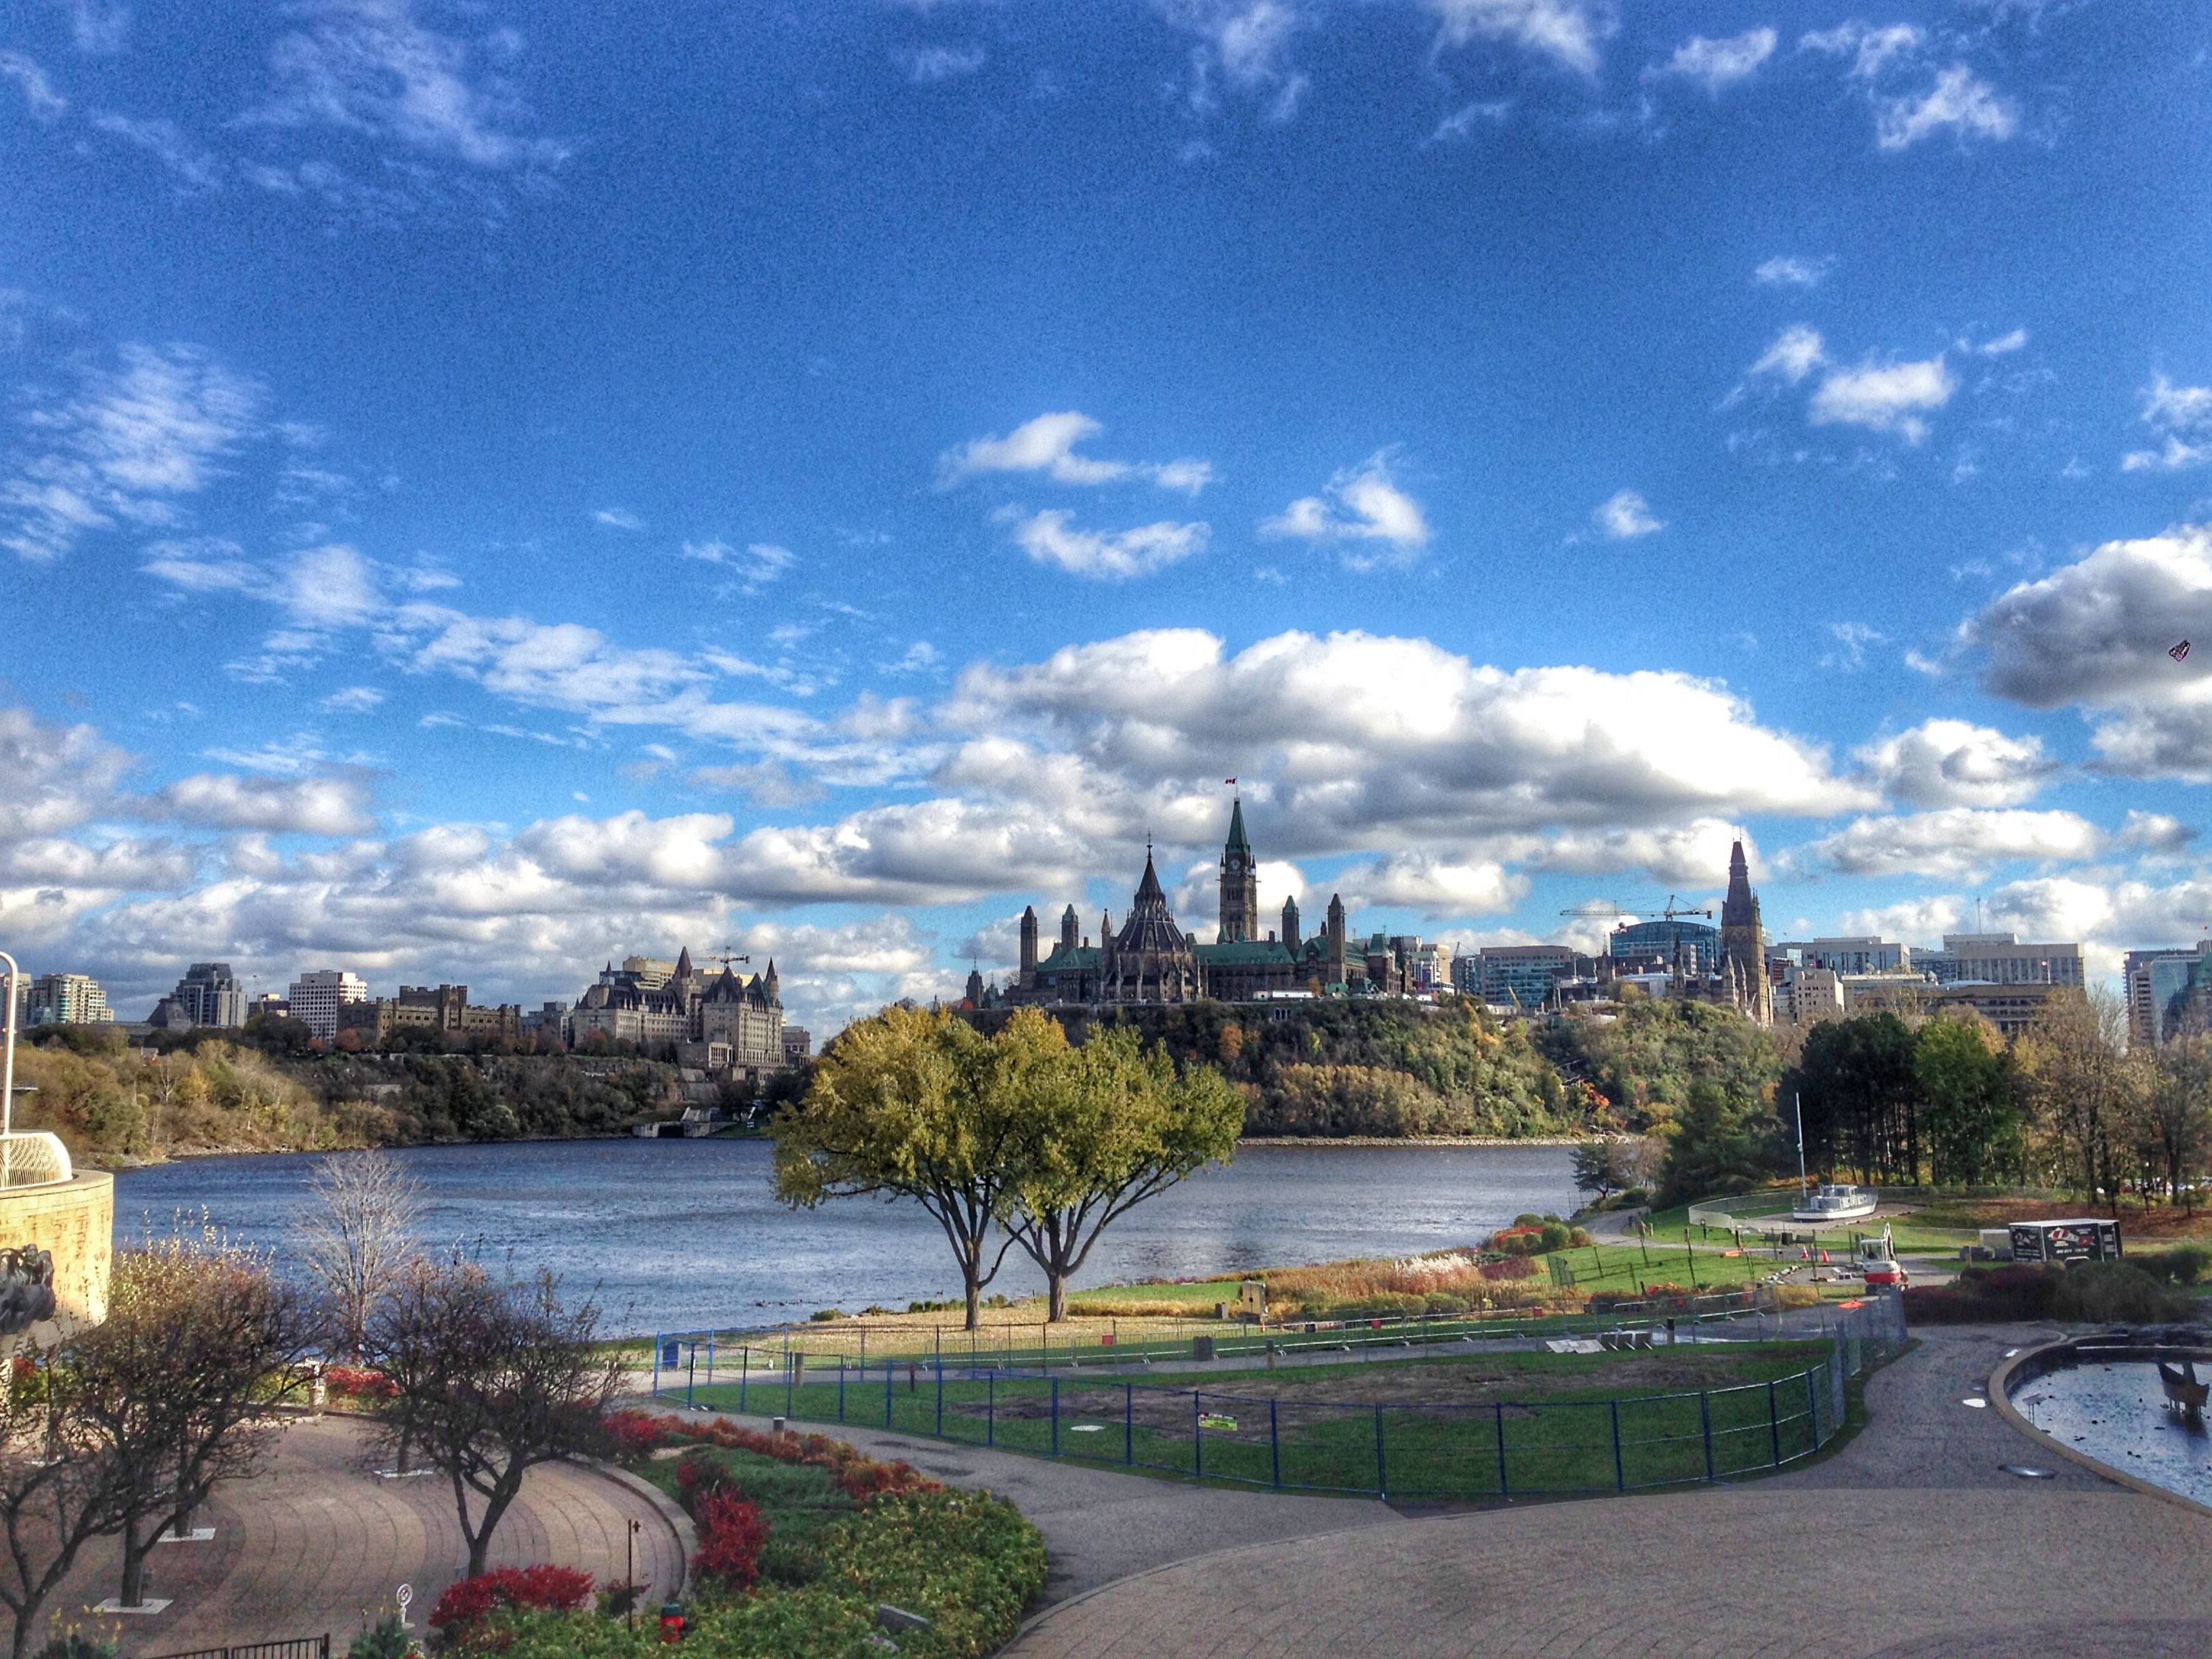 Photo 1: Ottawa, capitale du Canada